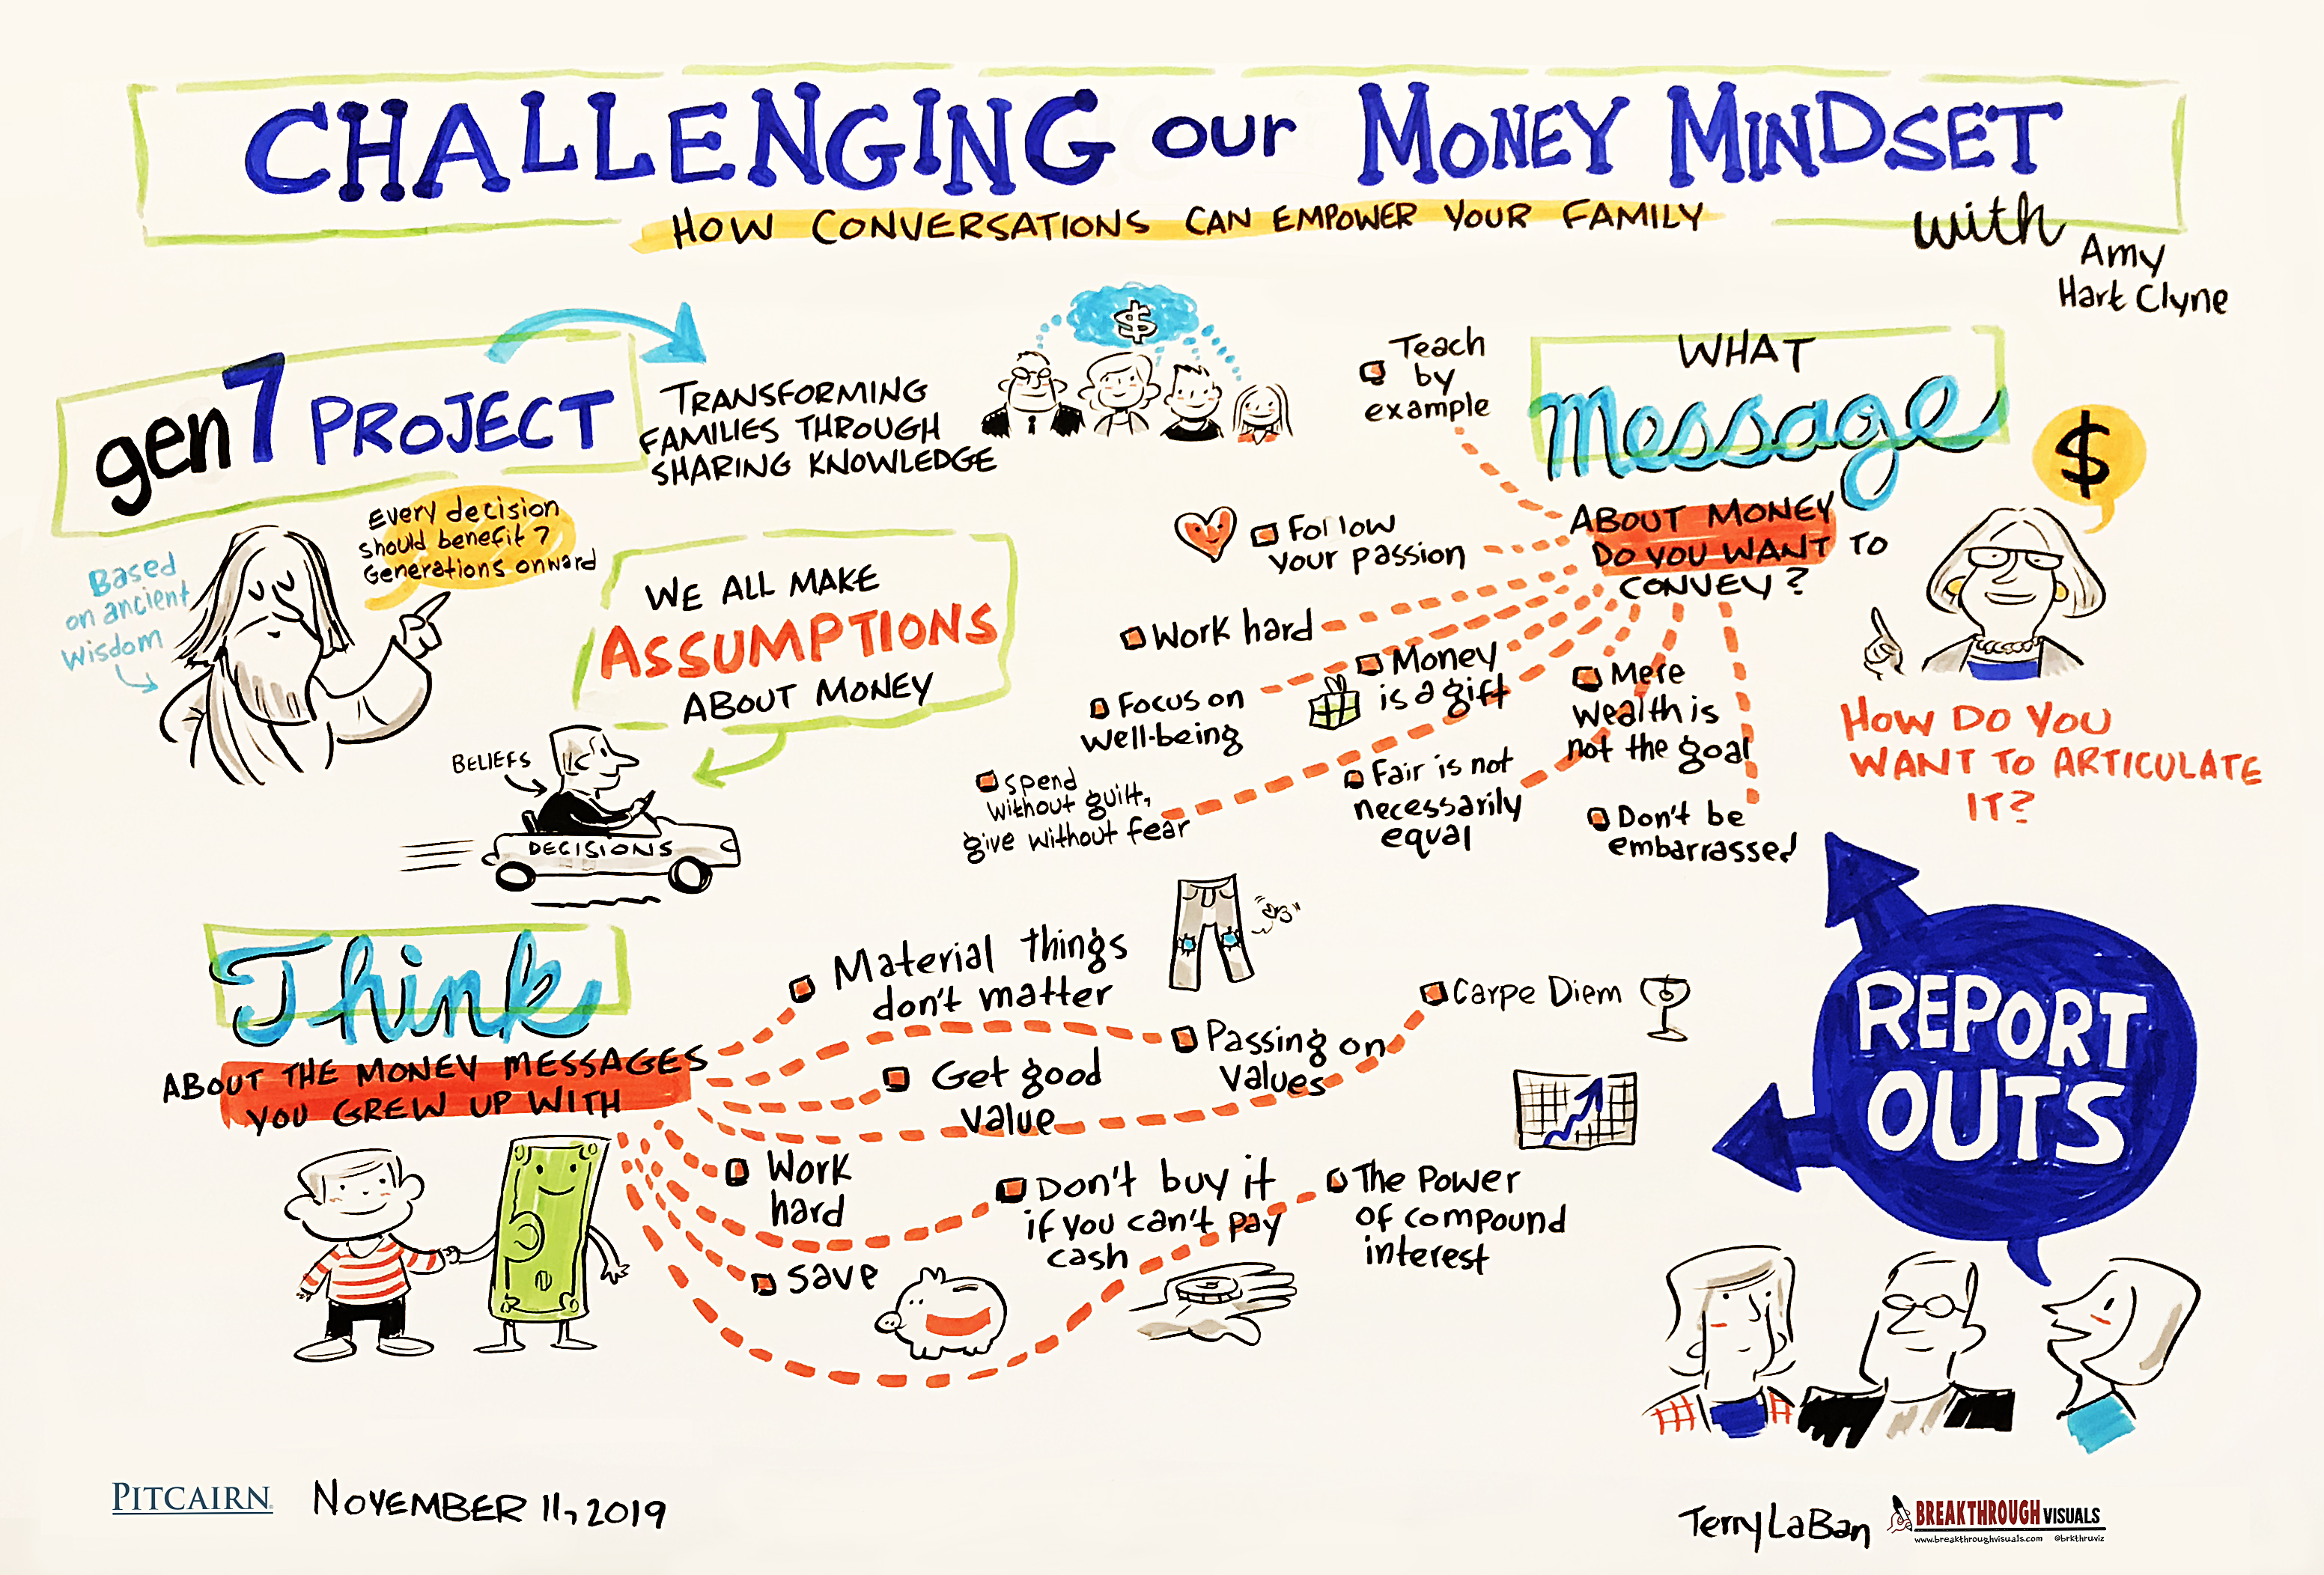 Challenging Our Money Mindset